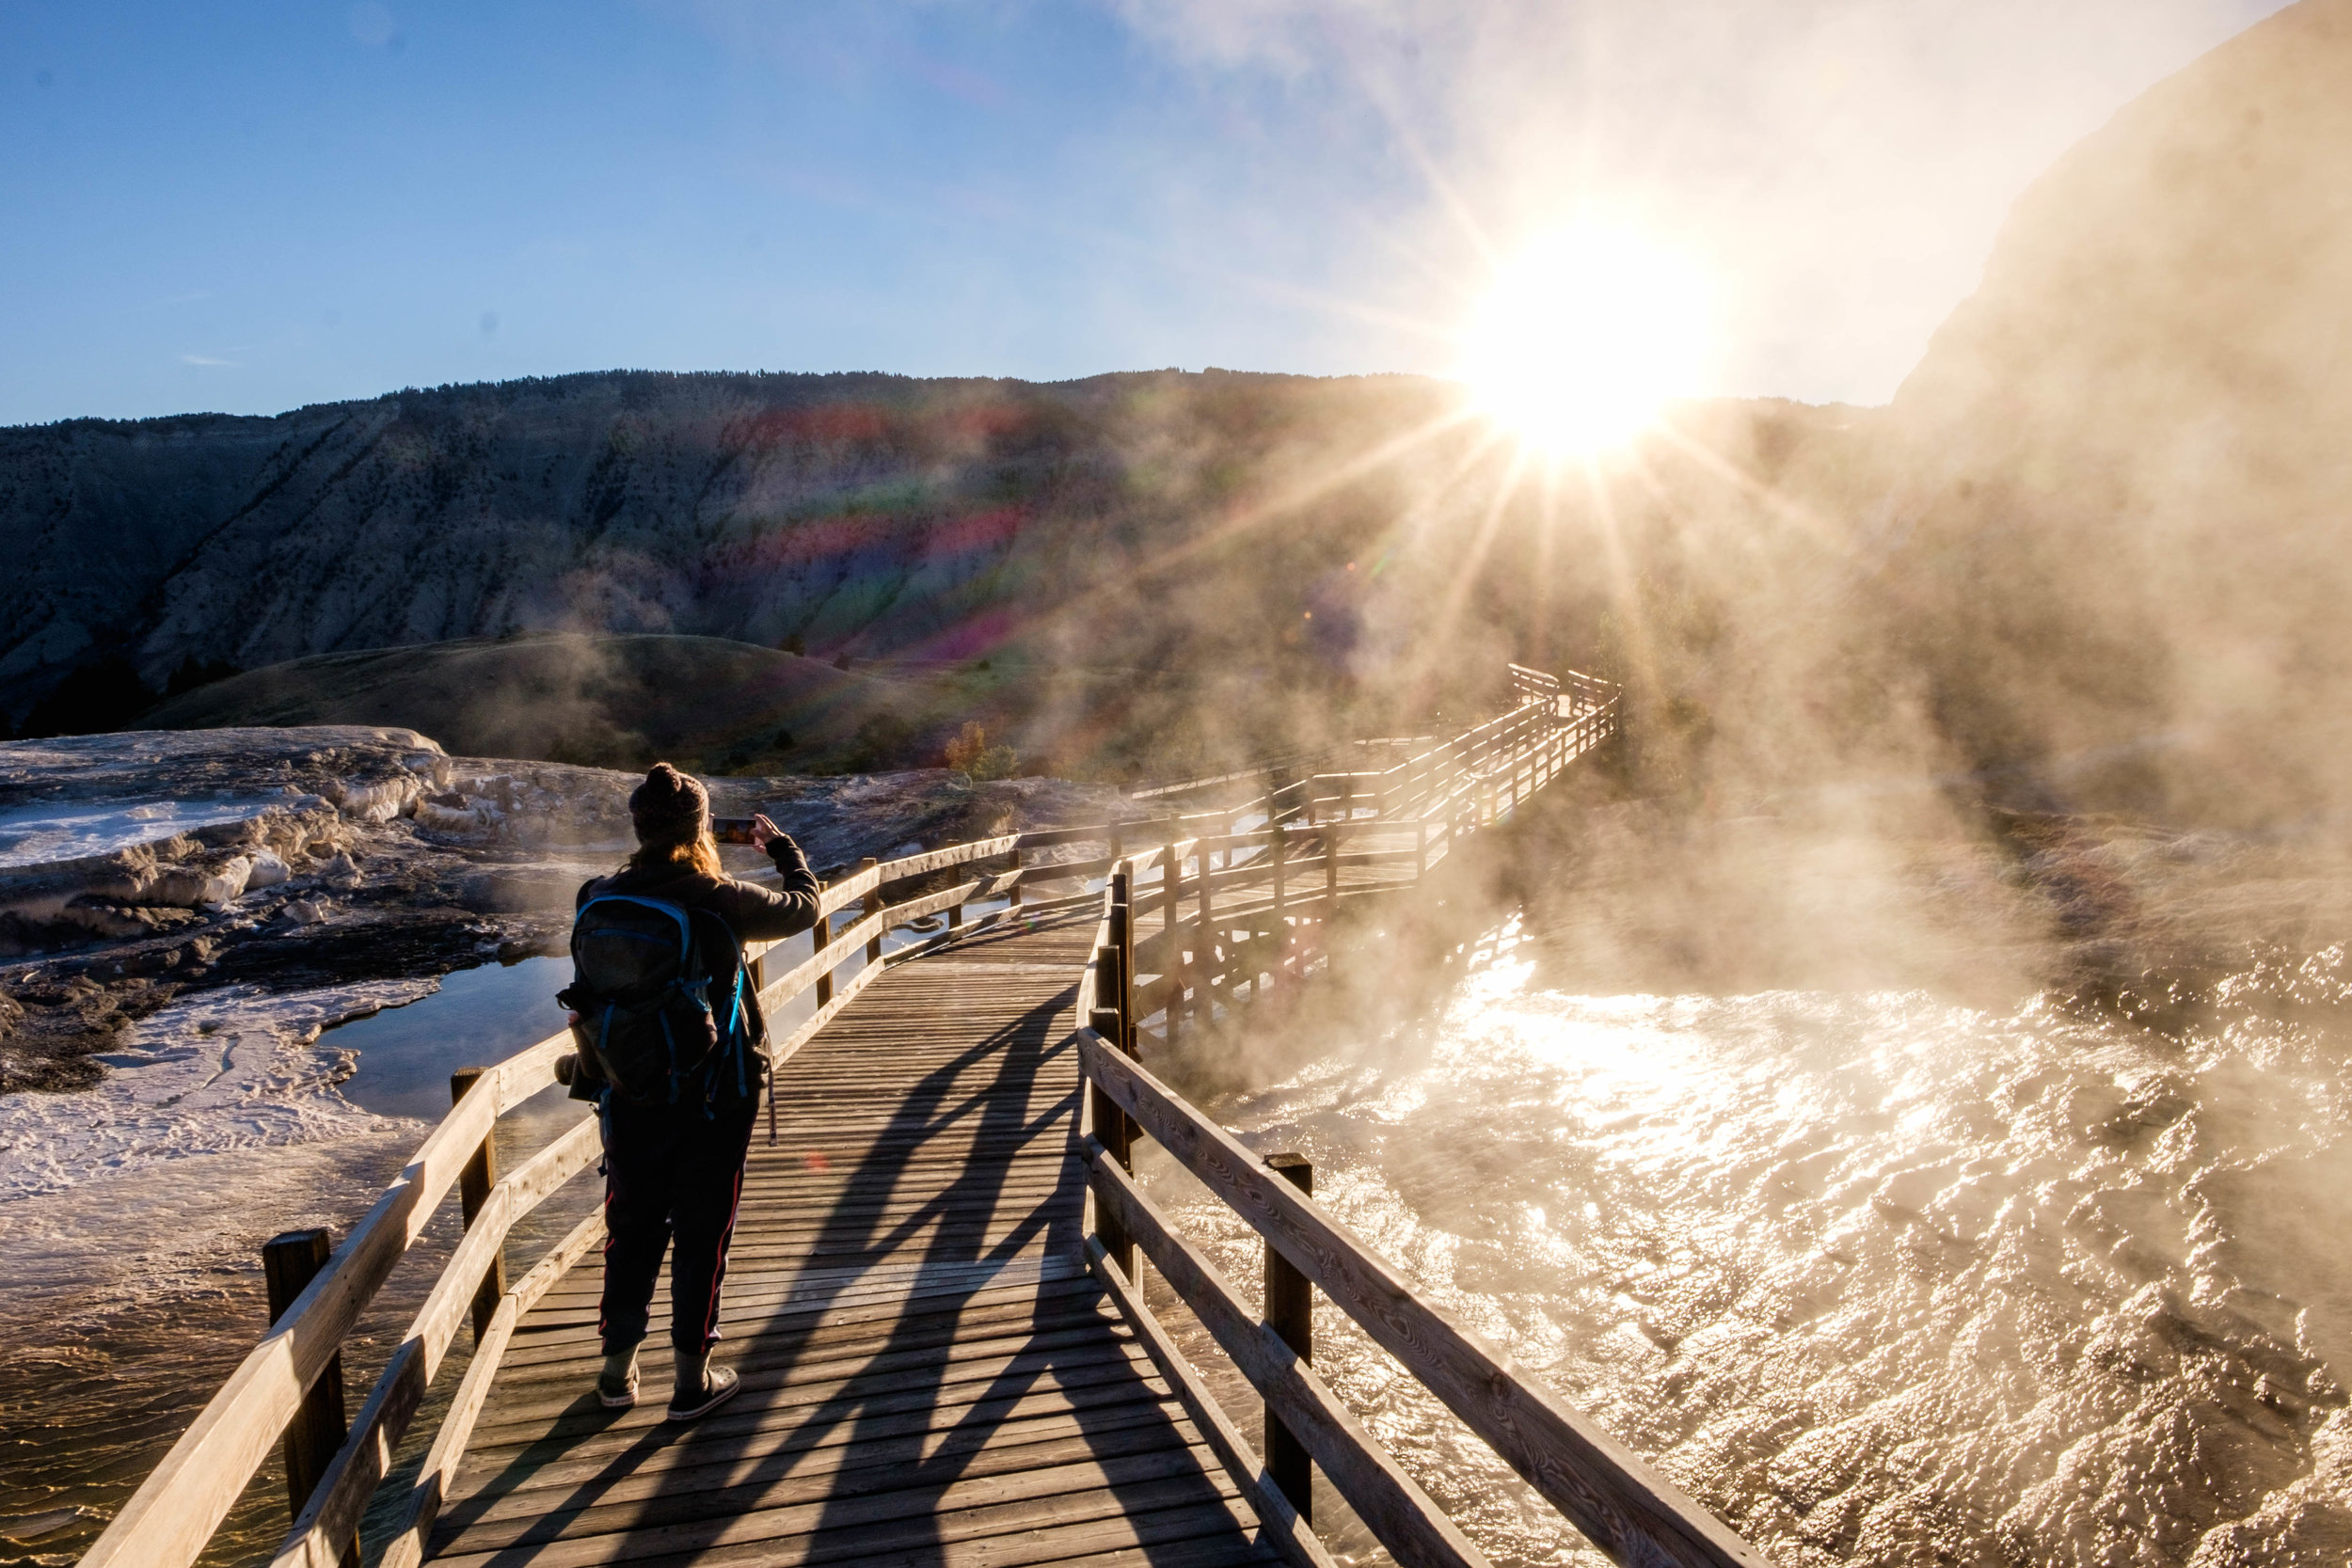 Our first stop: sunrise at Mammoth Hot Springs.